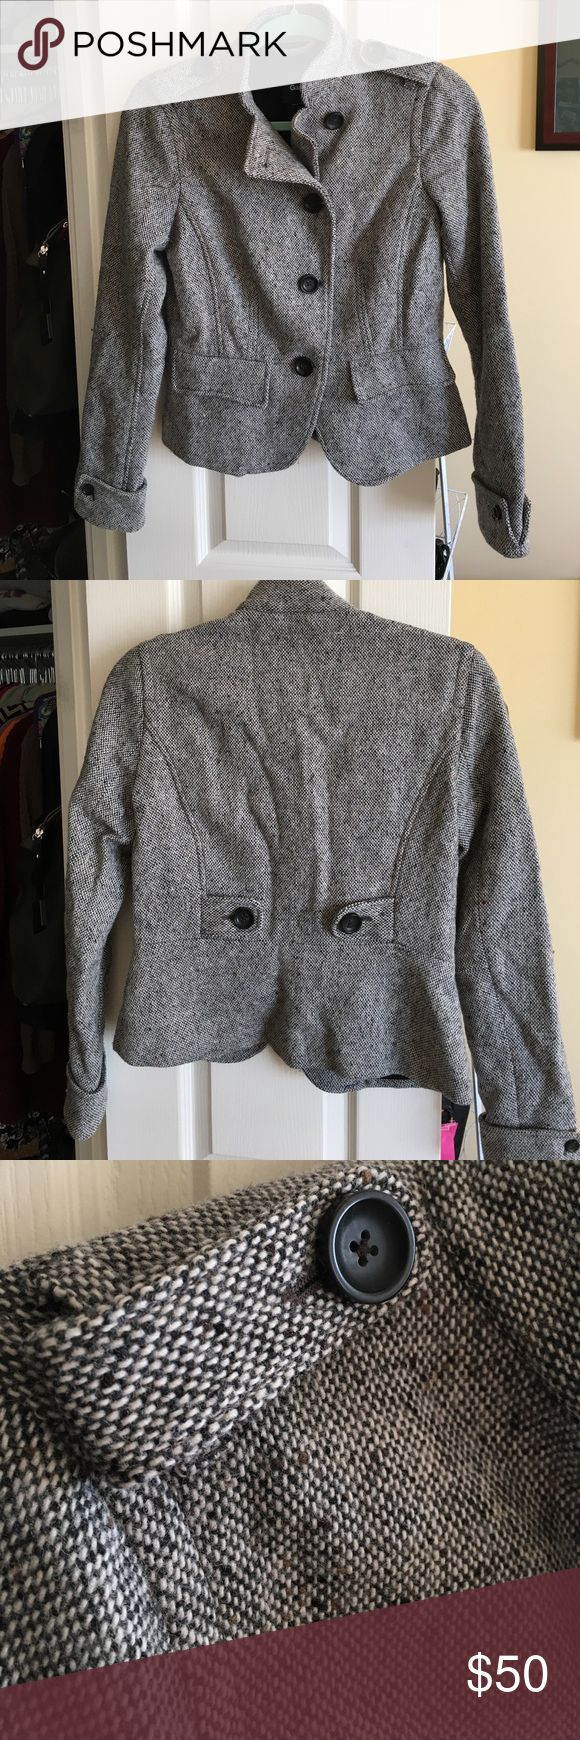 Women's tweed jacket Tweed jacket, black and white with specs of brown. Faux pockets. Tailored seam at waist, and hits right at top of hips. In great condition and the perfect lightweight jacket to dress up any outfit. GAP Jackets & Coats